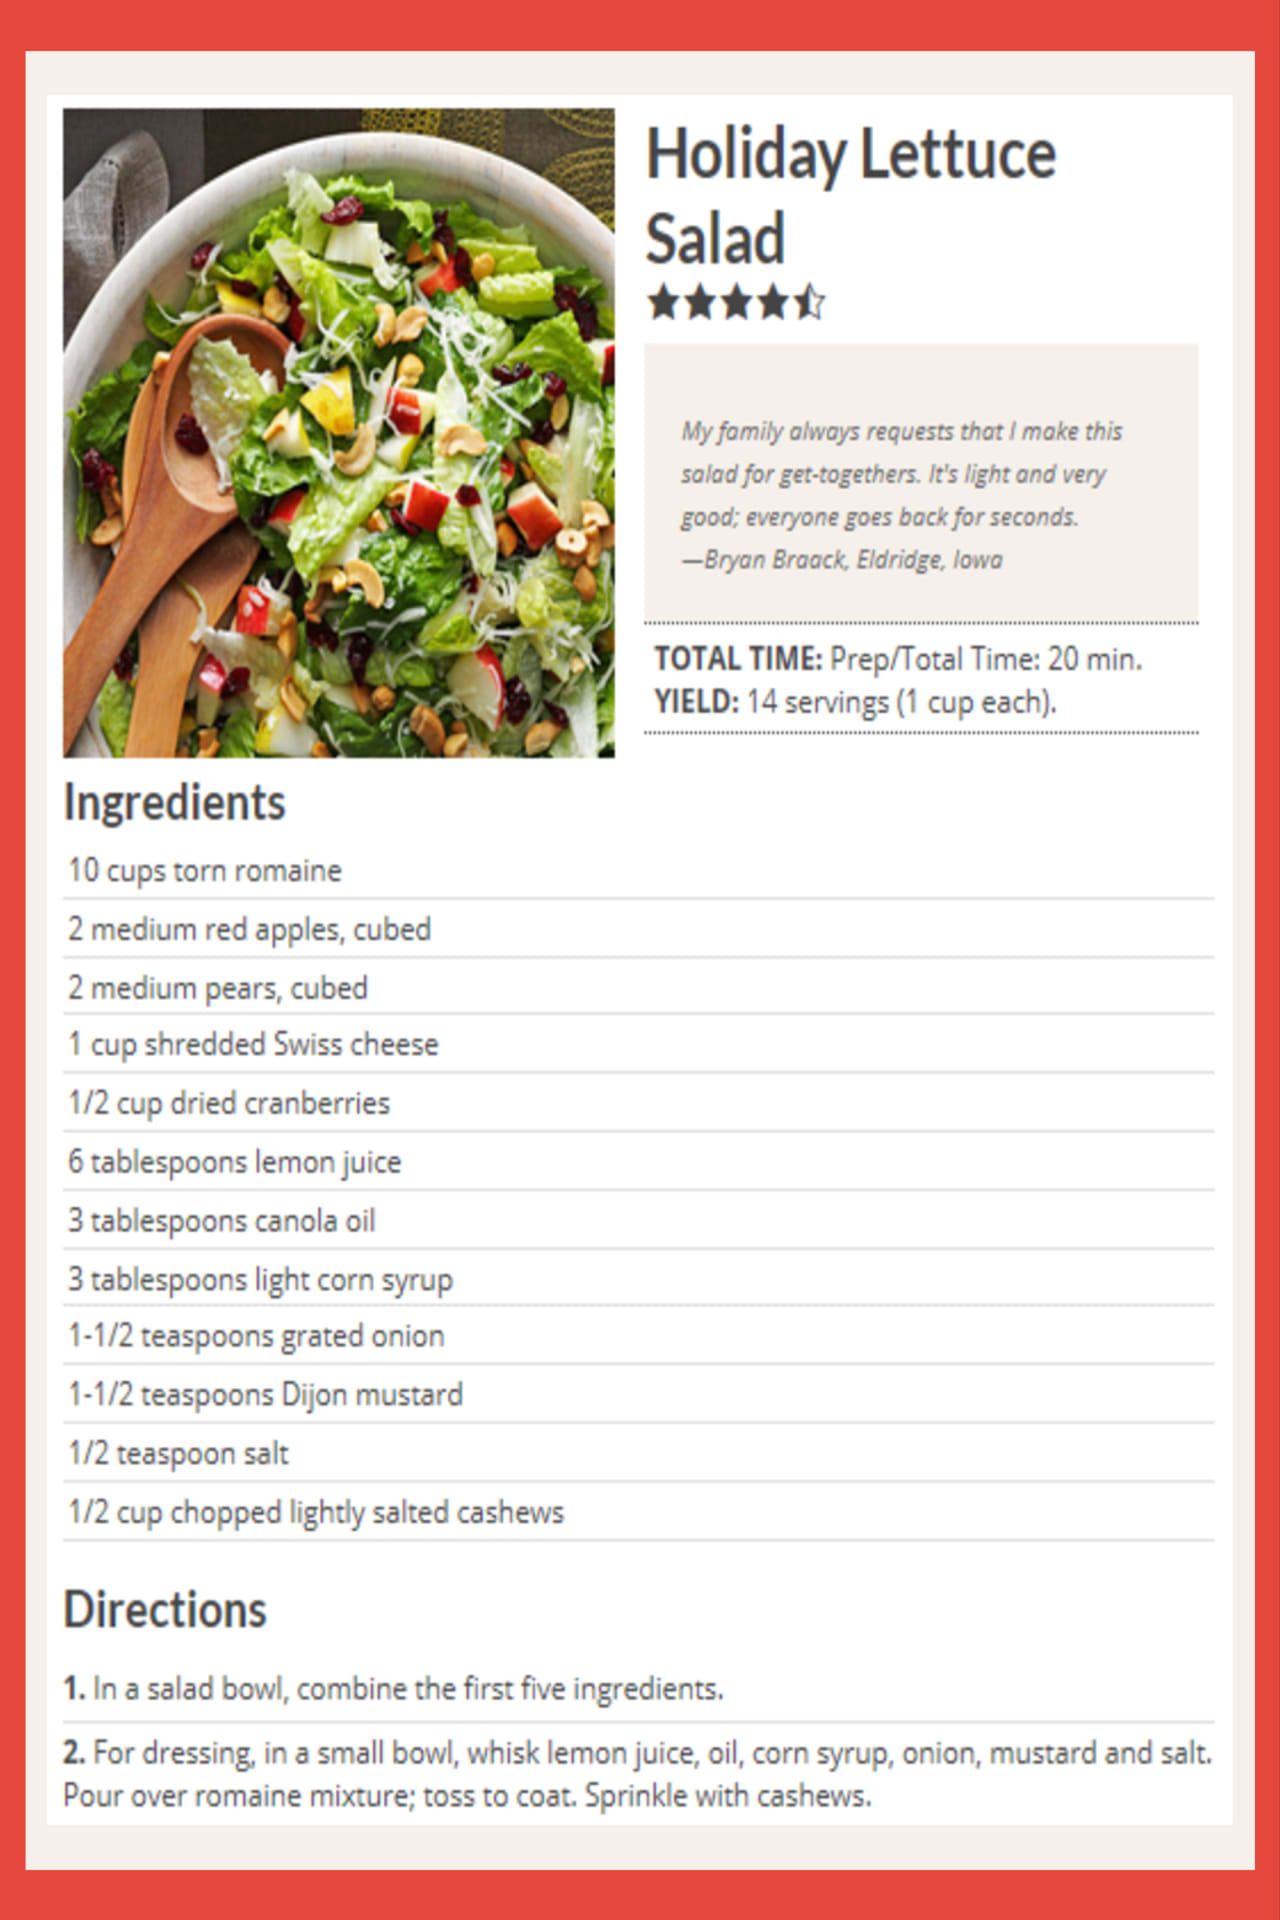 Summer salads for parties easy healthy summer salads for a crowd - easy BBQ cookout summer party food idea or for your block party, picnics, potlucks, easy summer dinners for all families or family reunion - fruit bowls summer salads , easy recipes including cold pasta summer salads - summer salads with chicken and more